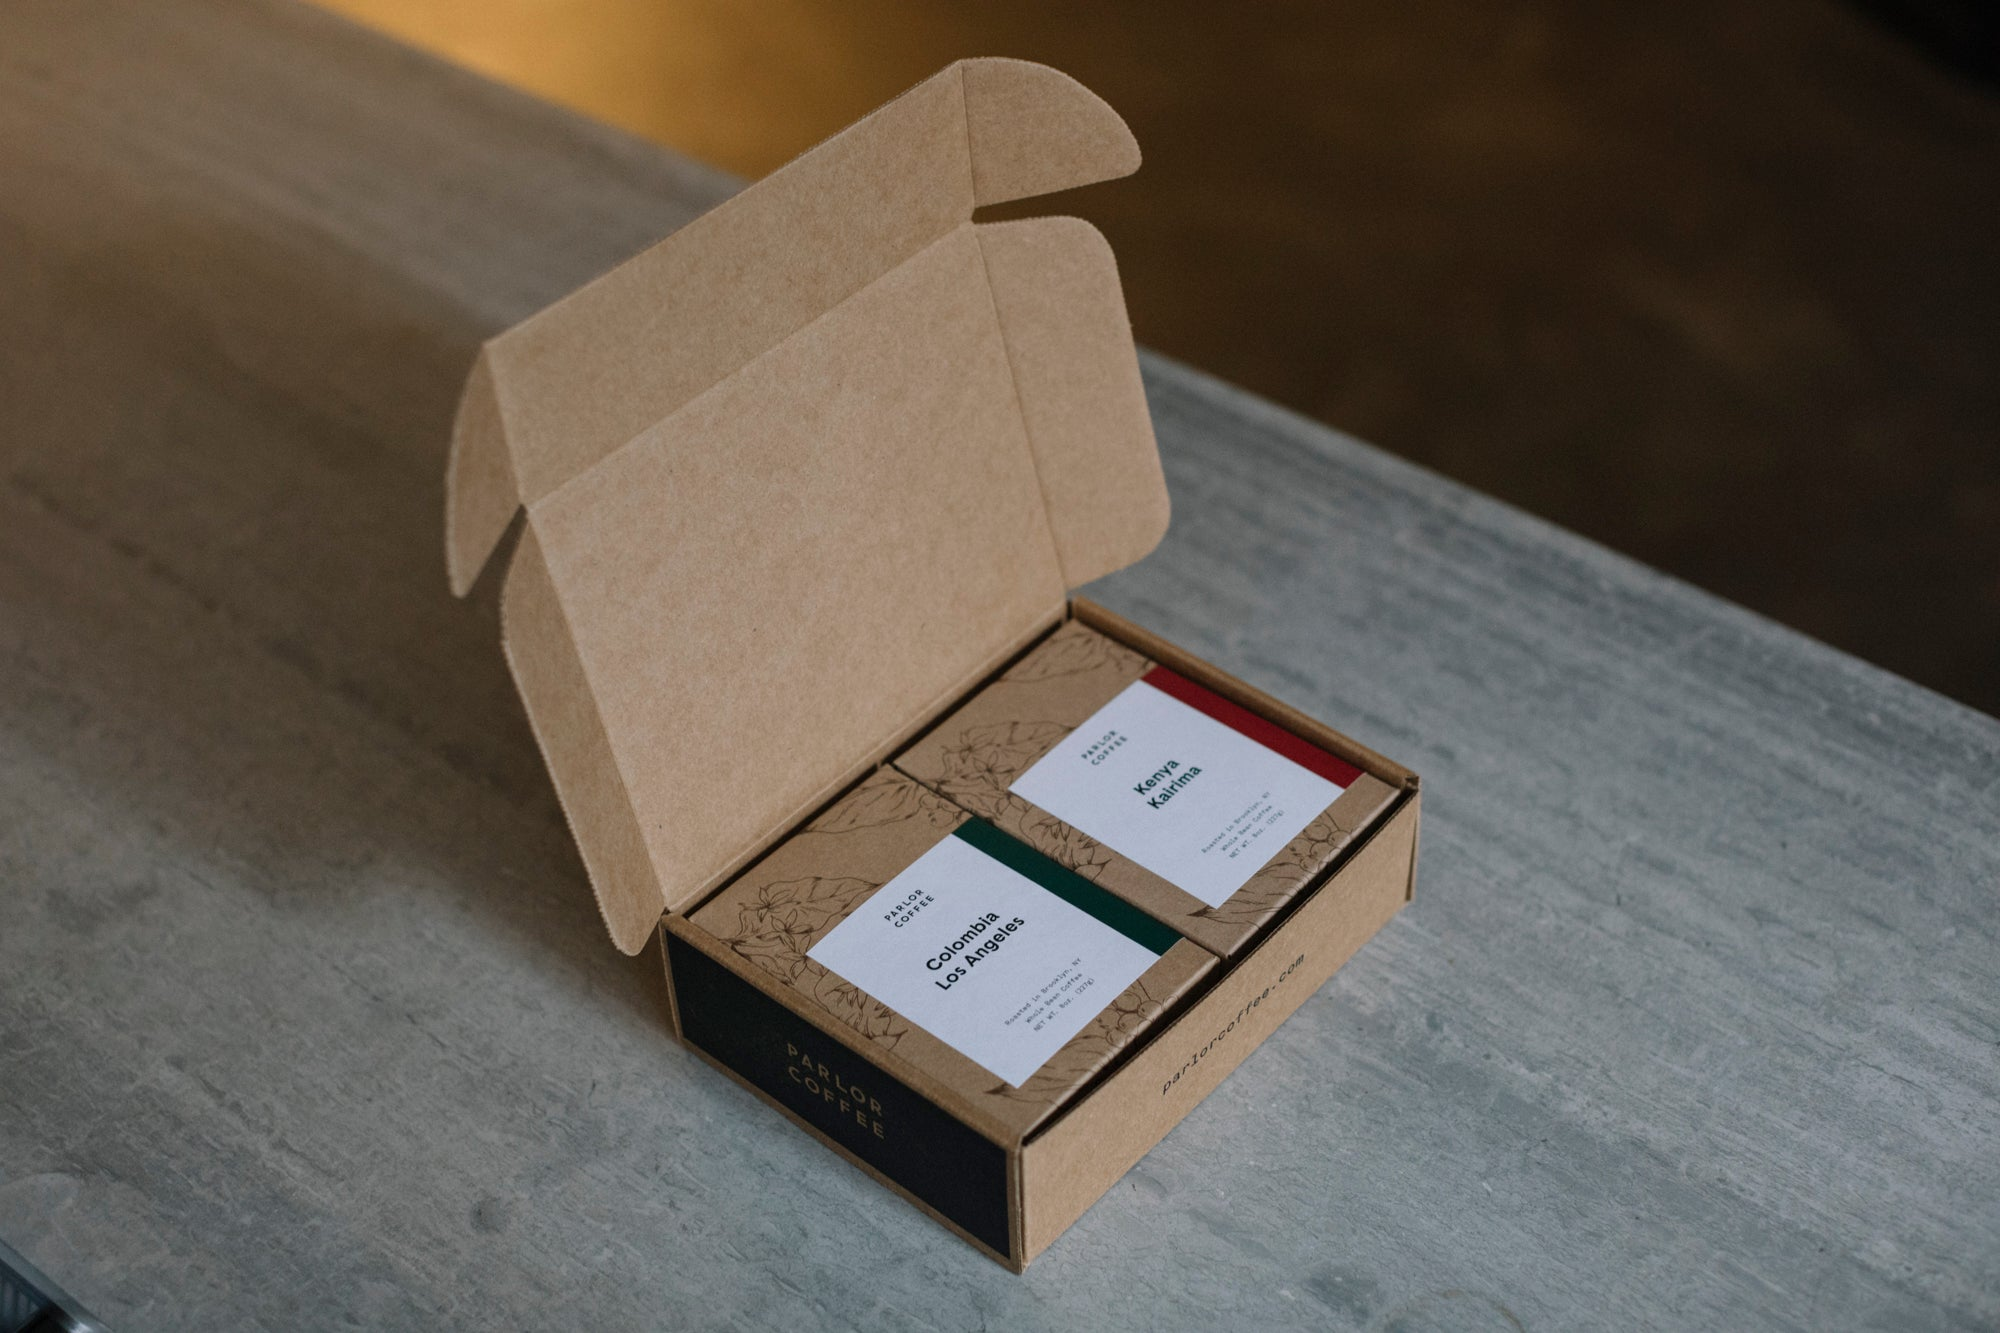 Pair of coffee boxes